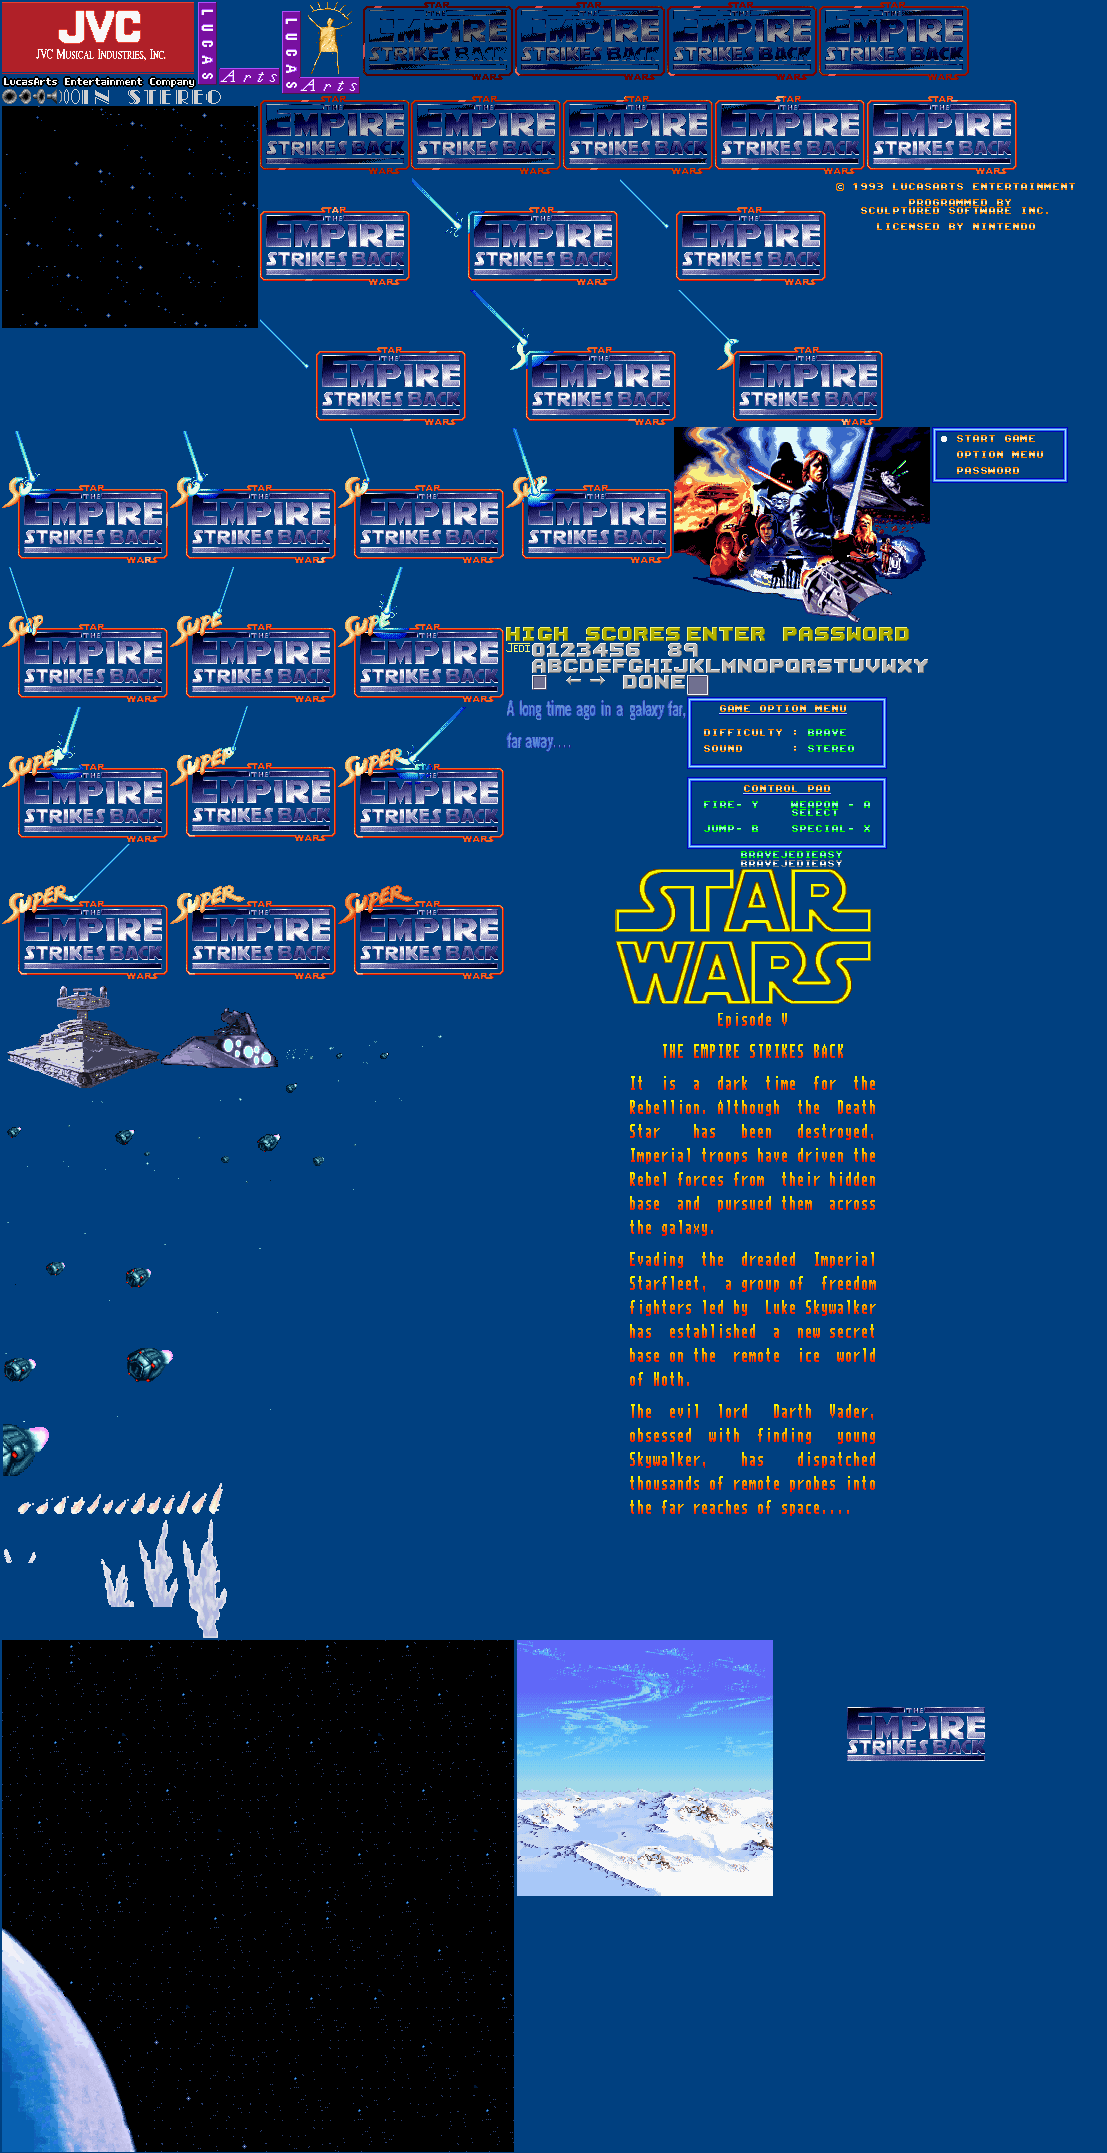 Super Star Wars 2: The Empire Strikes Back - Title Screen